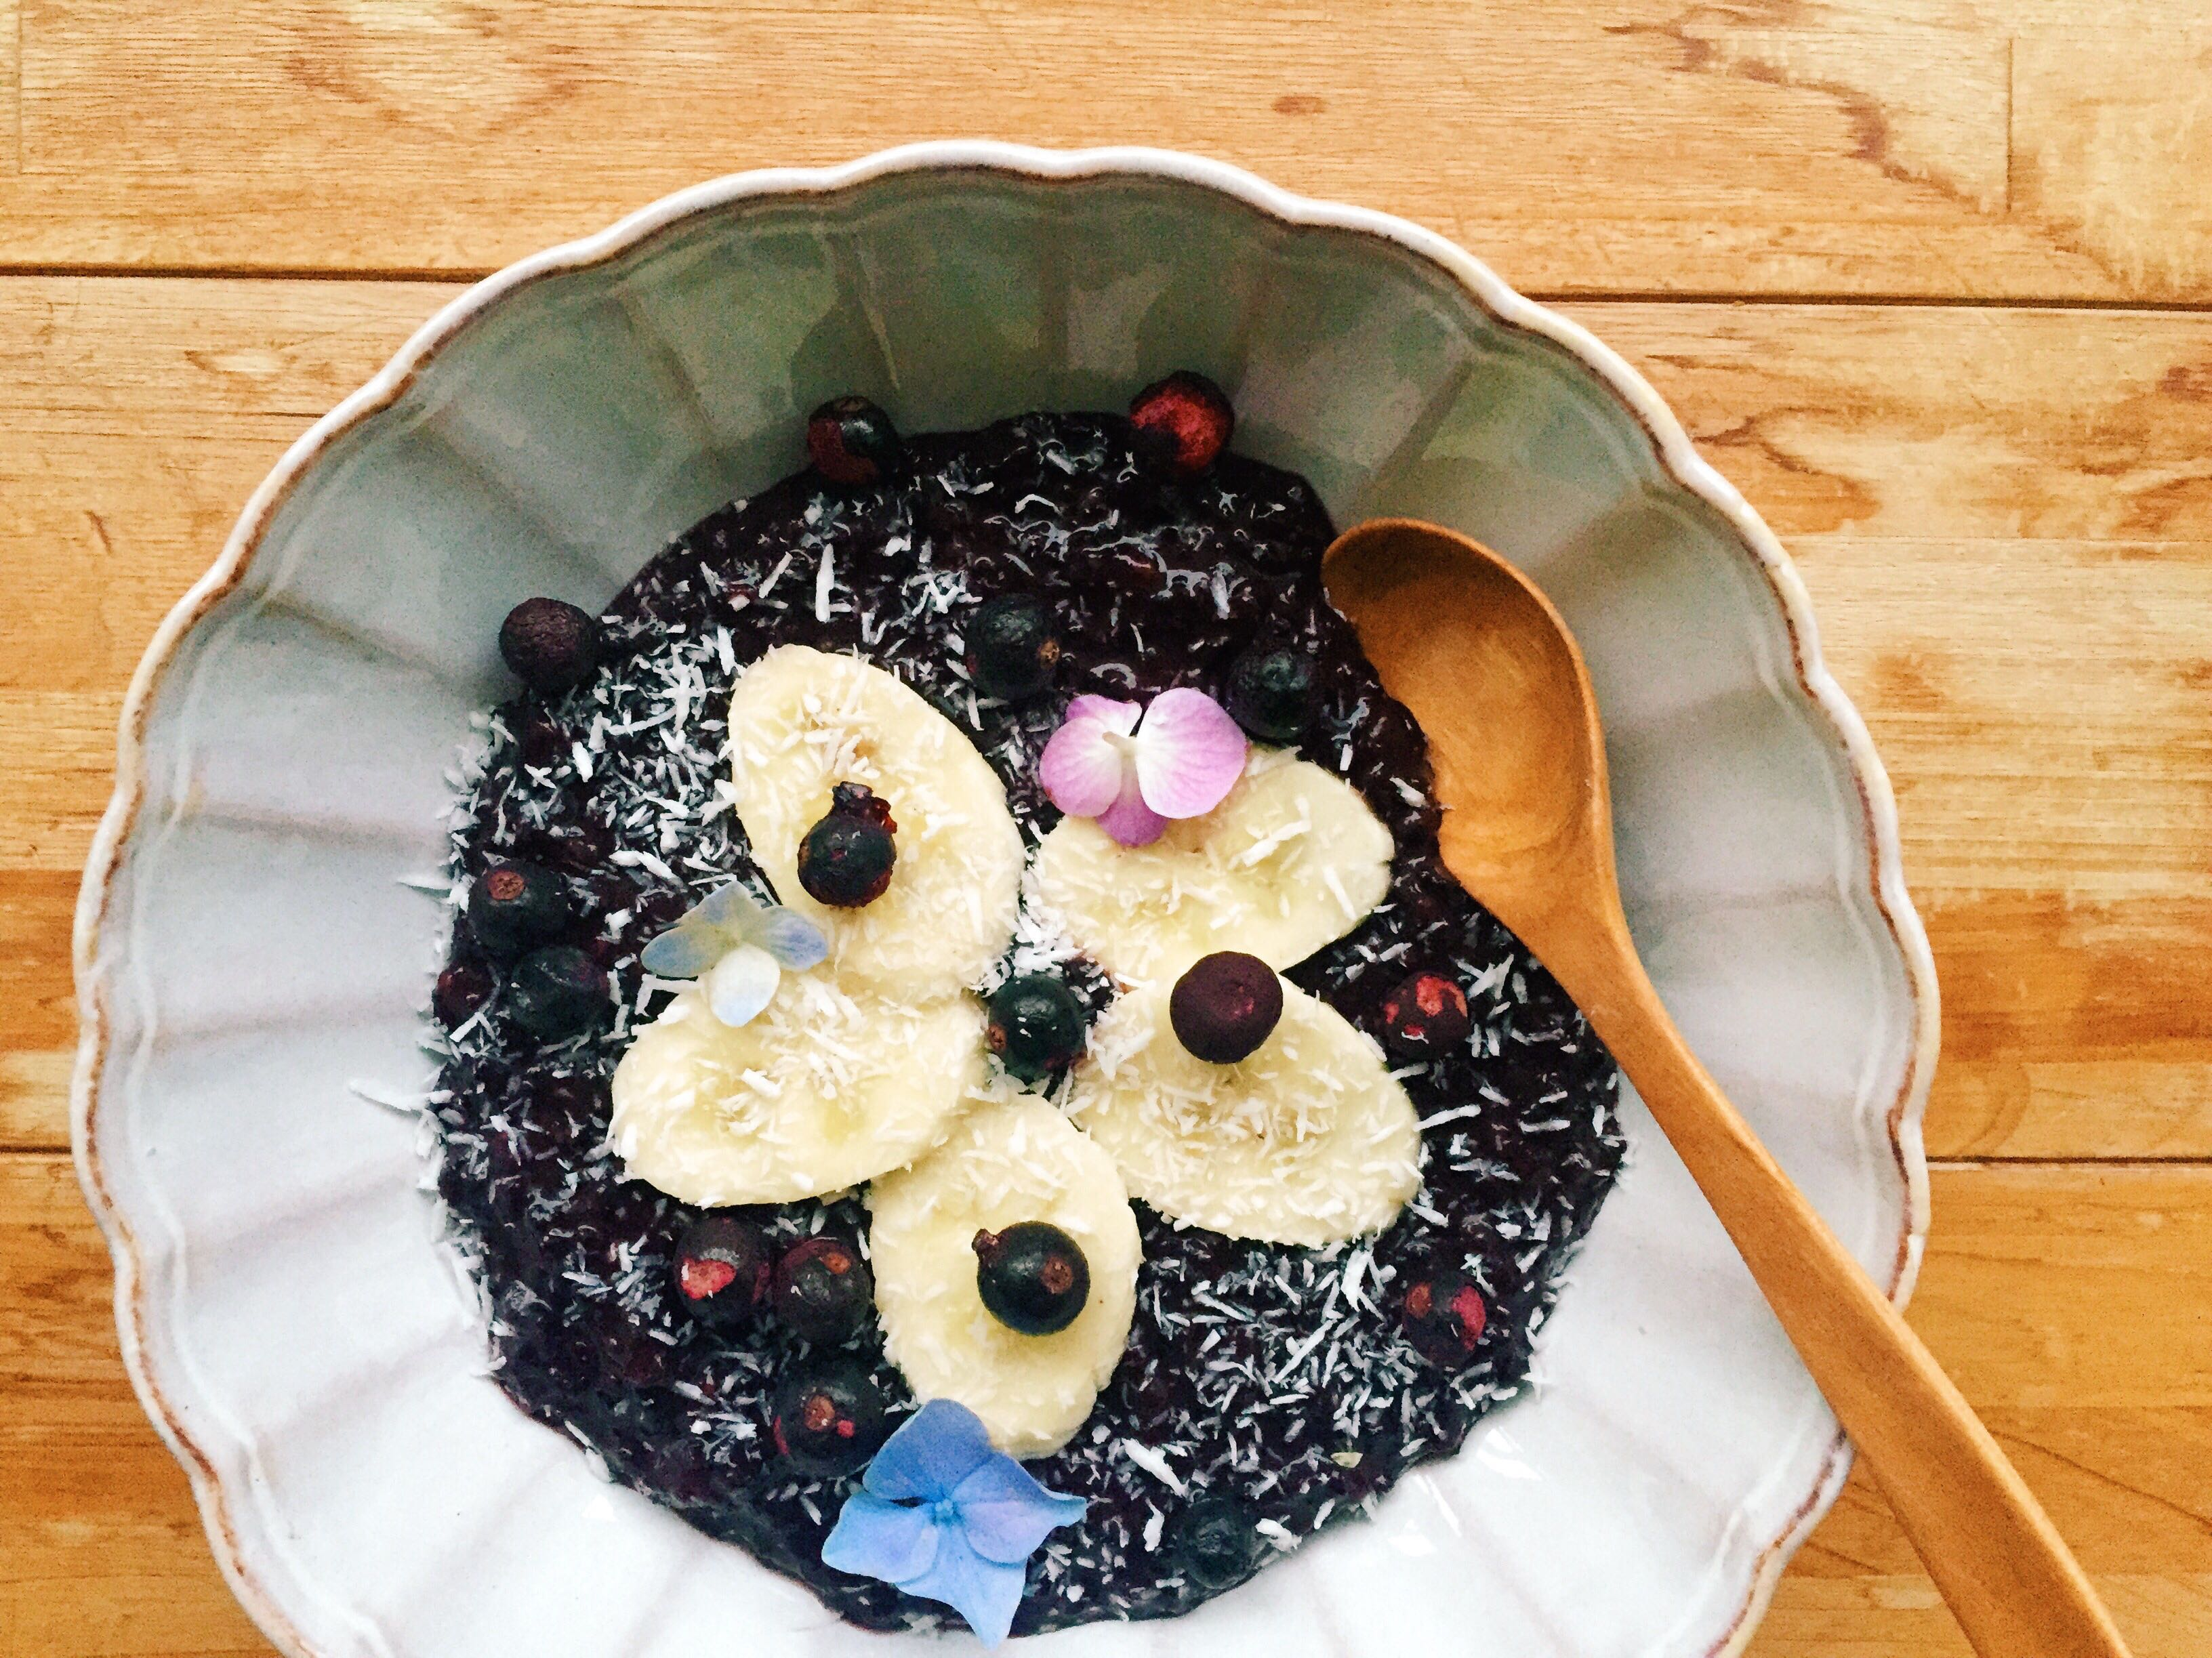 Black rice (Lead)